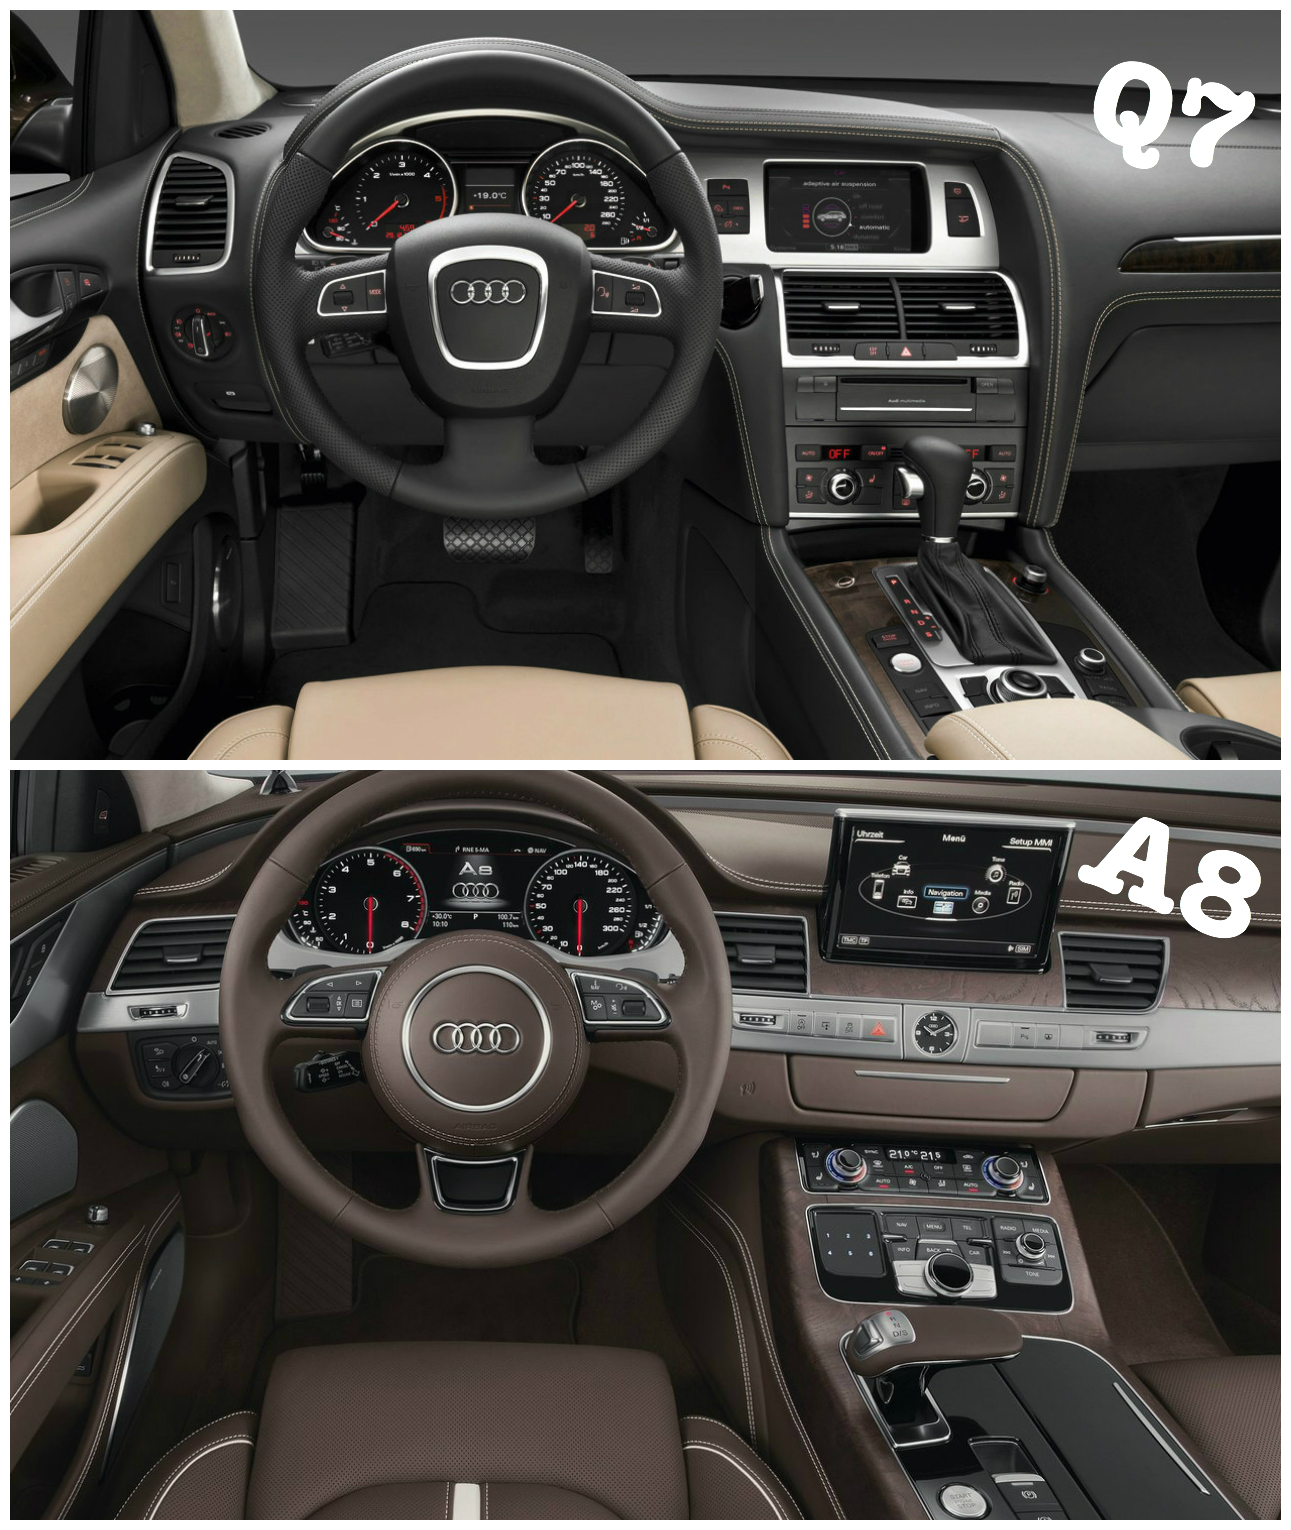 2016 Audi Q7 Interior Revealed in Latest Spyshots New MMI